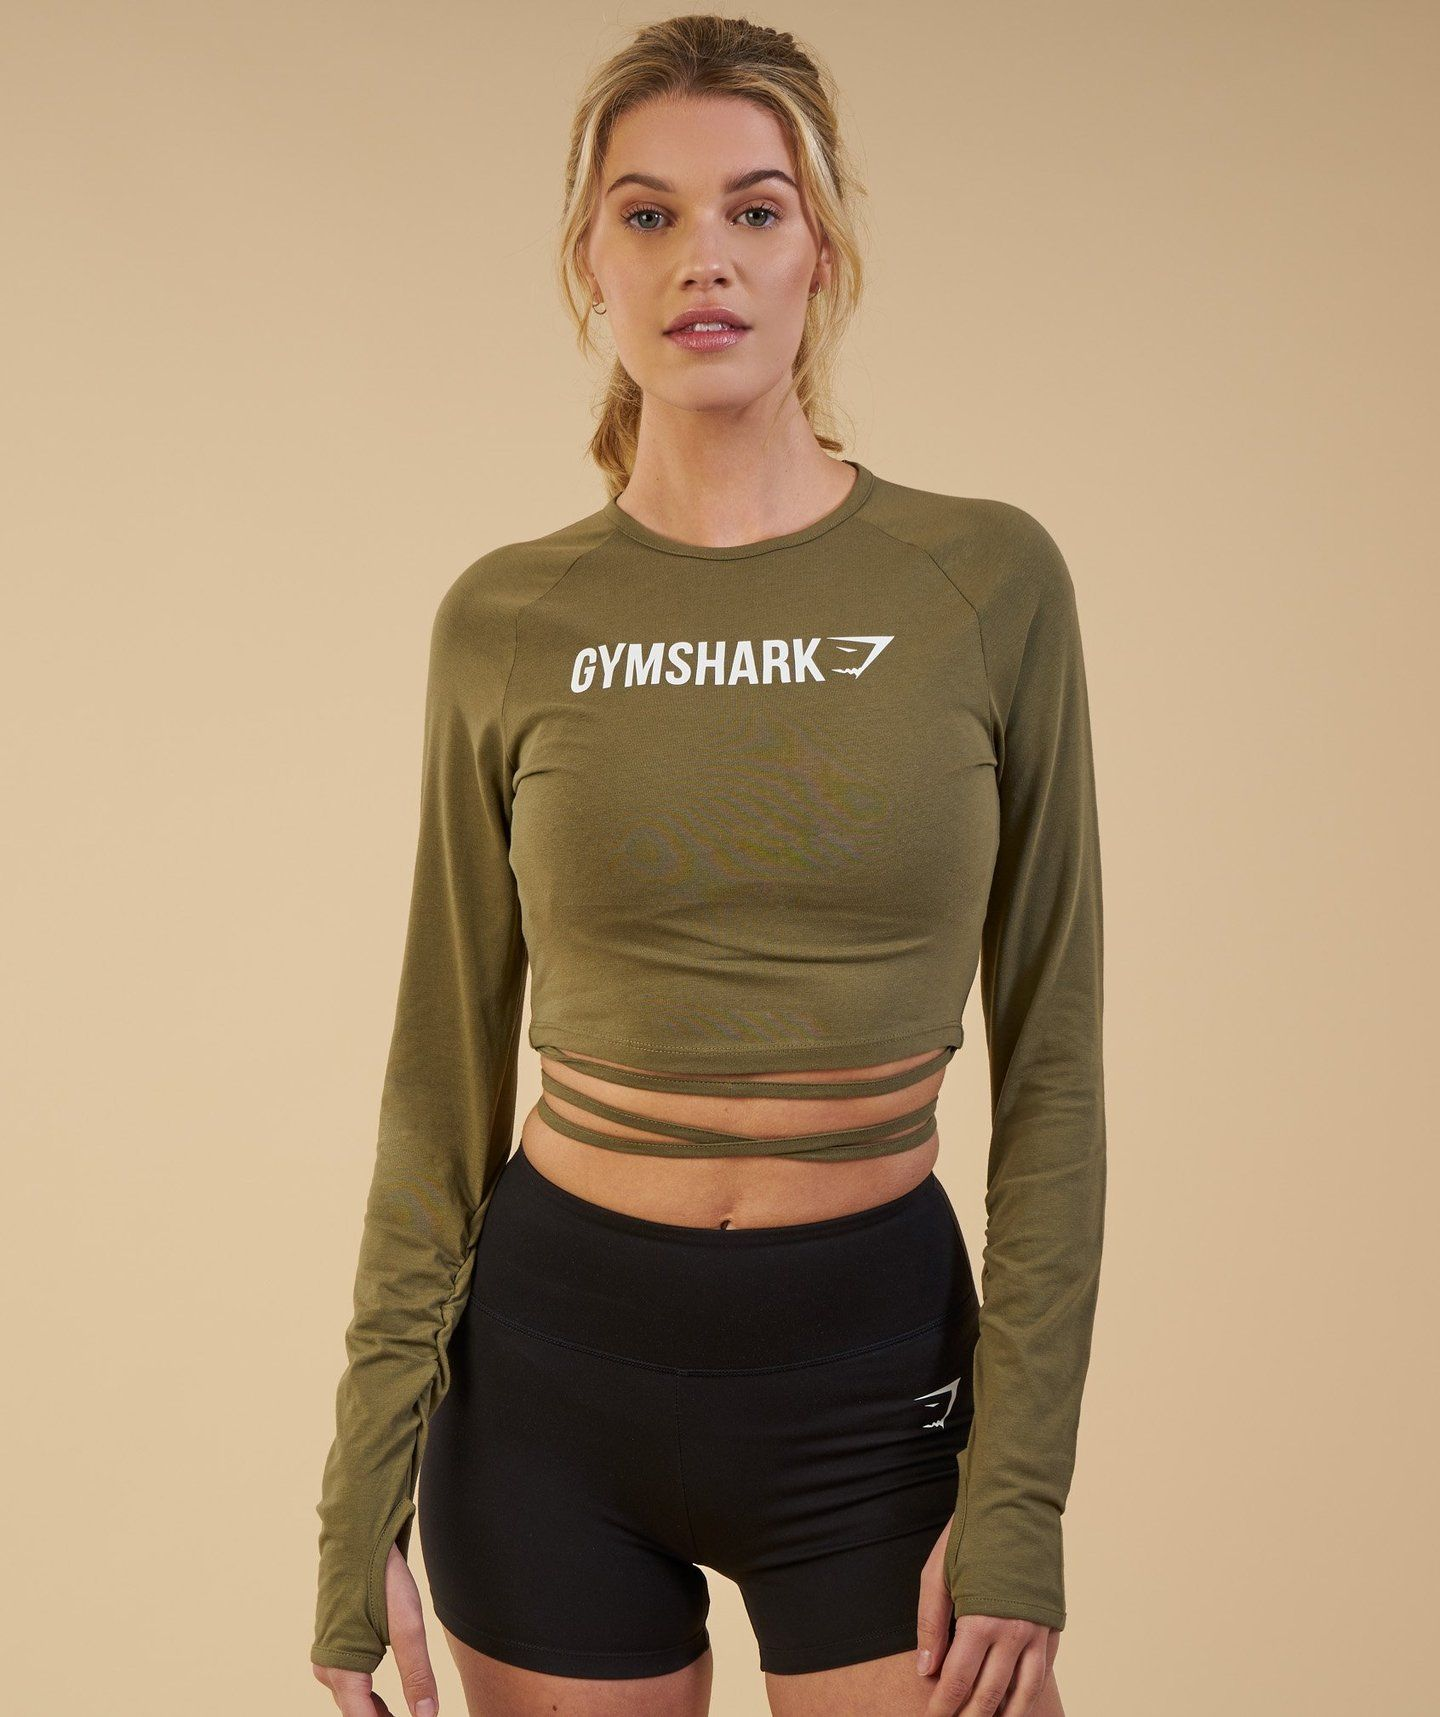 afc8cbdd90b Gymshark Long Sleeve Ribbon Crop Top - Khaki 1